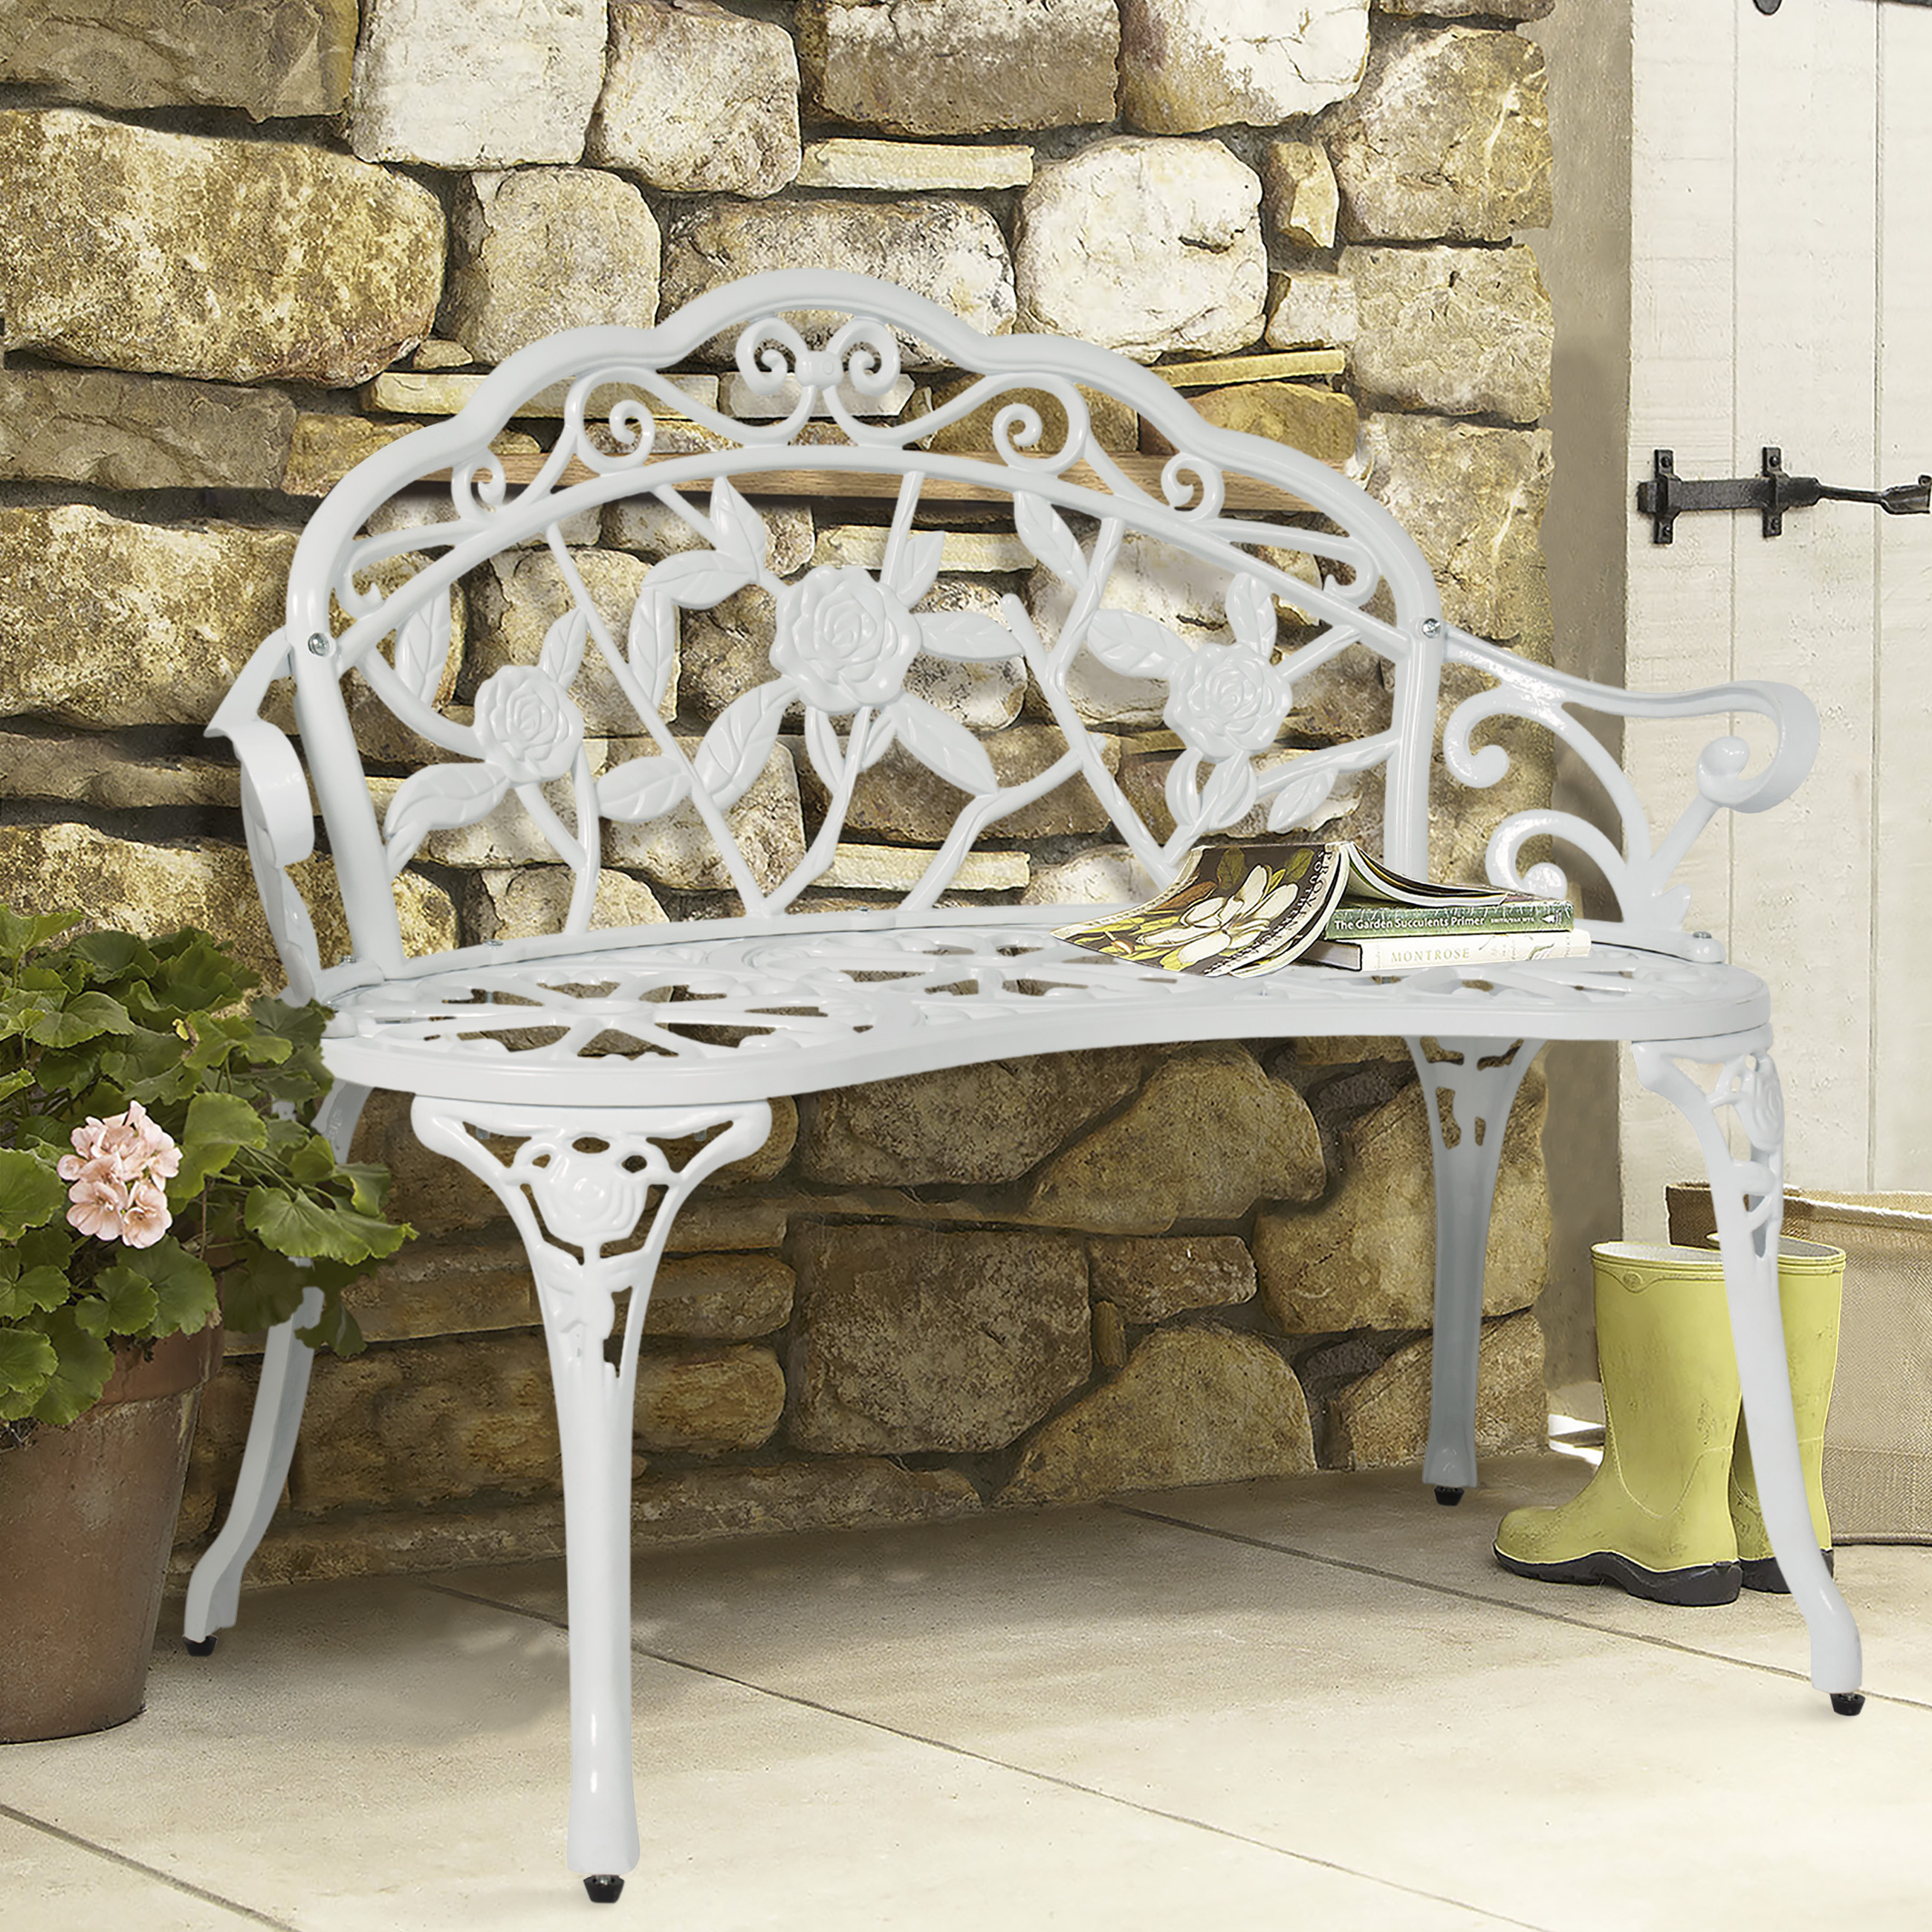 Best Choice Products Floral Rose Accented Metal Garden Patio Bench w  Antique Finish White by Best Choice Products